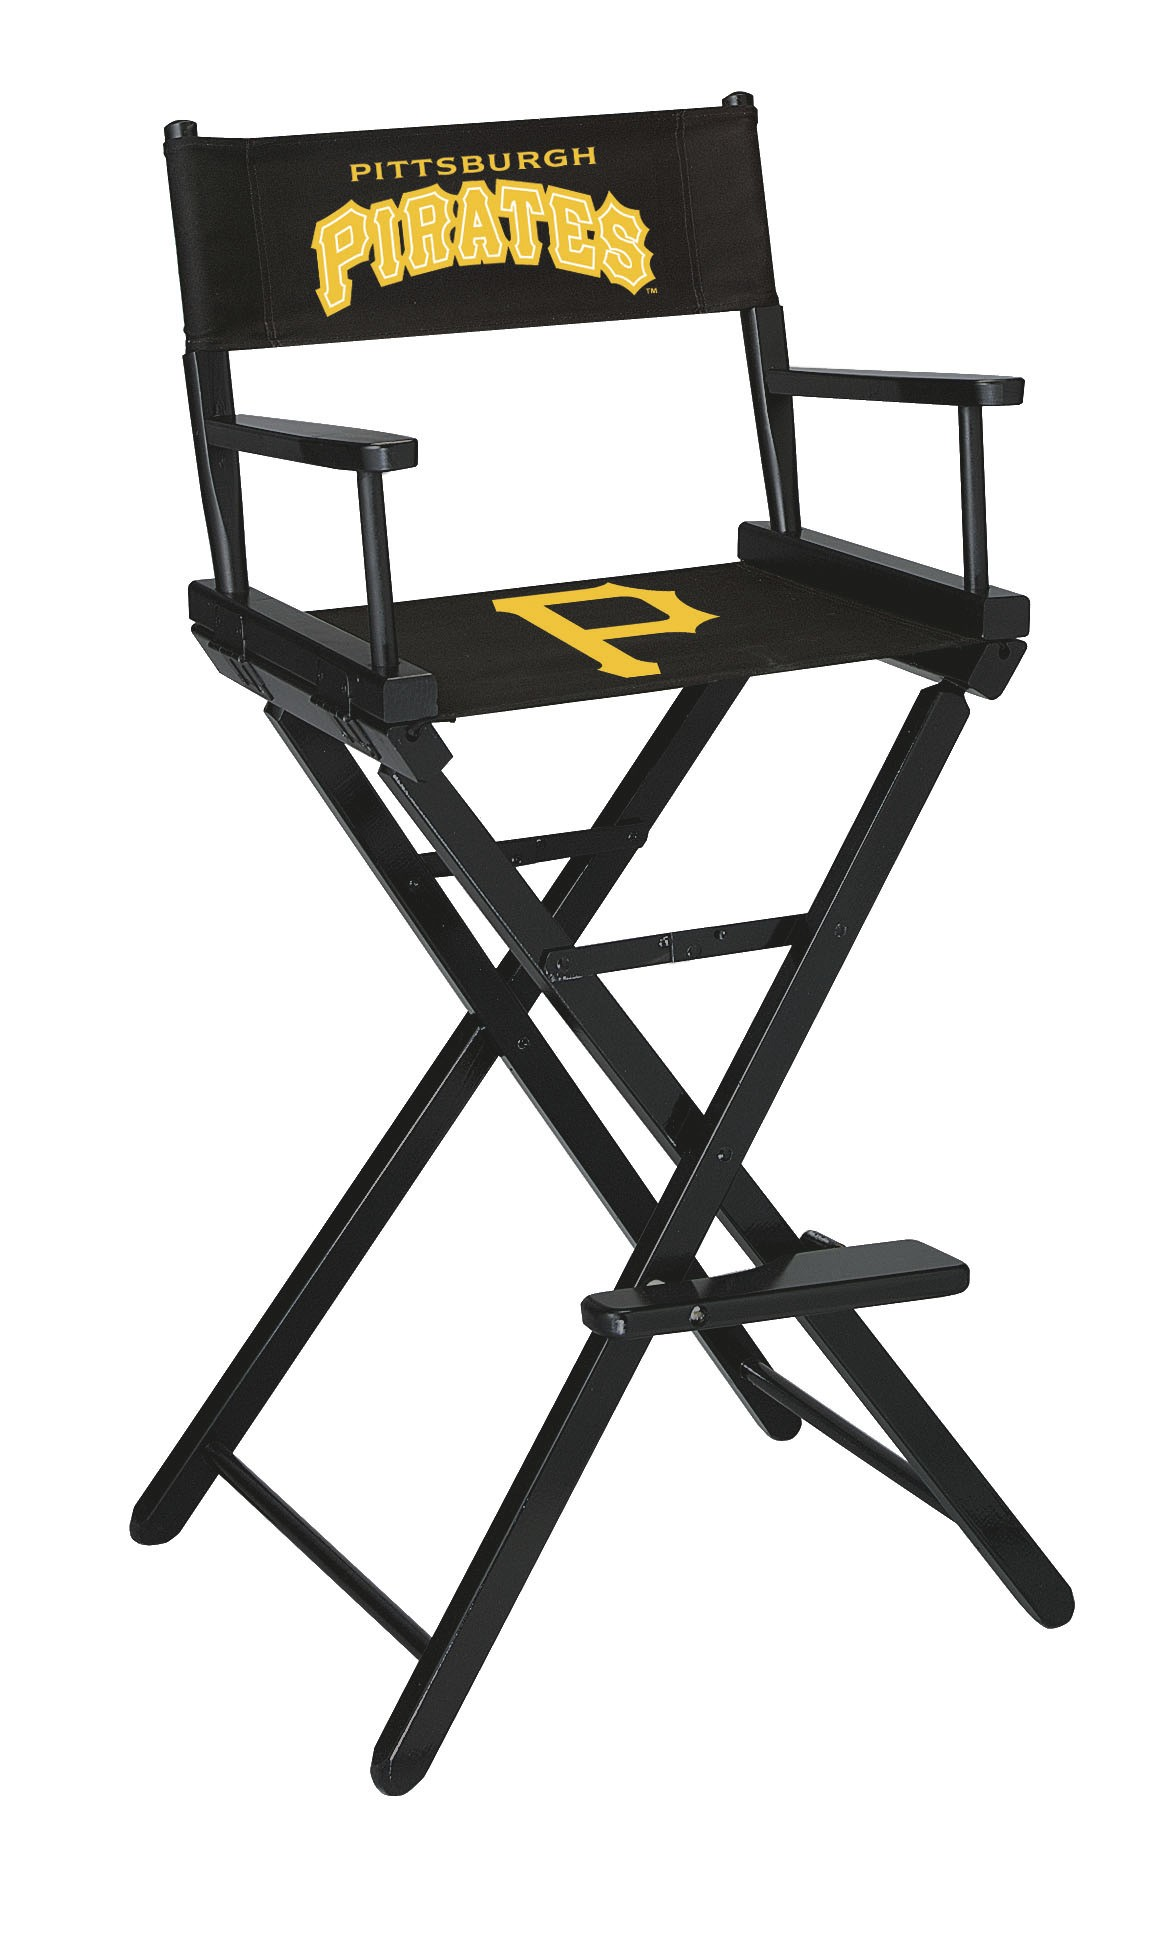 PITTSBURGH PIRATES BAR HEIGHT DIRECTORS CHAIR